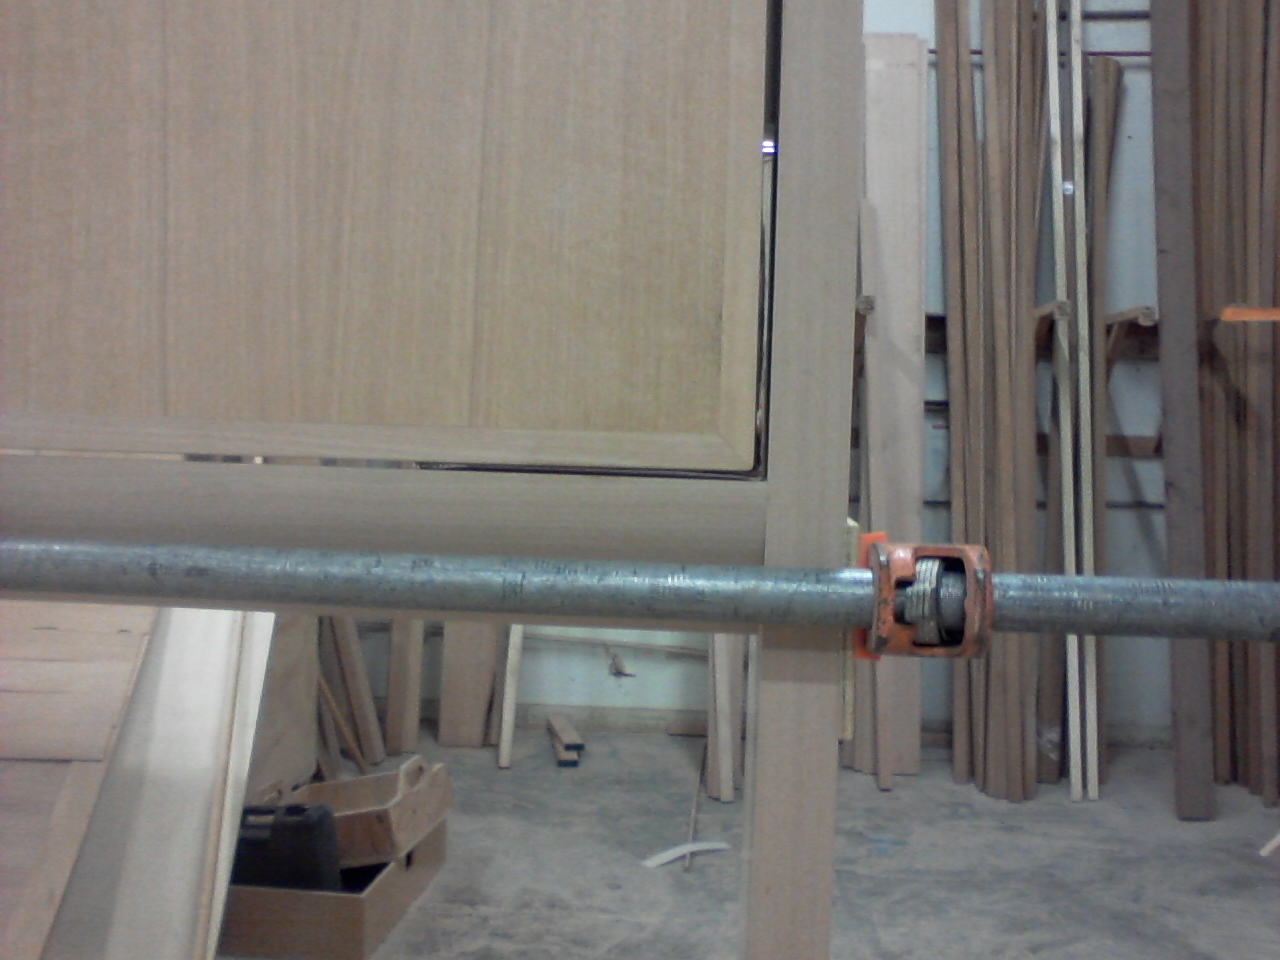 shows radius lower support trim,  standard gap, peek At custom hrdwr